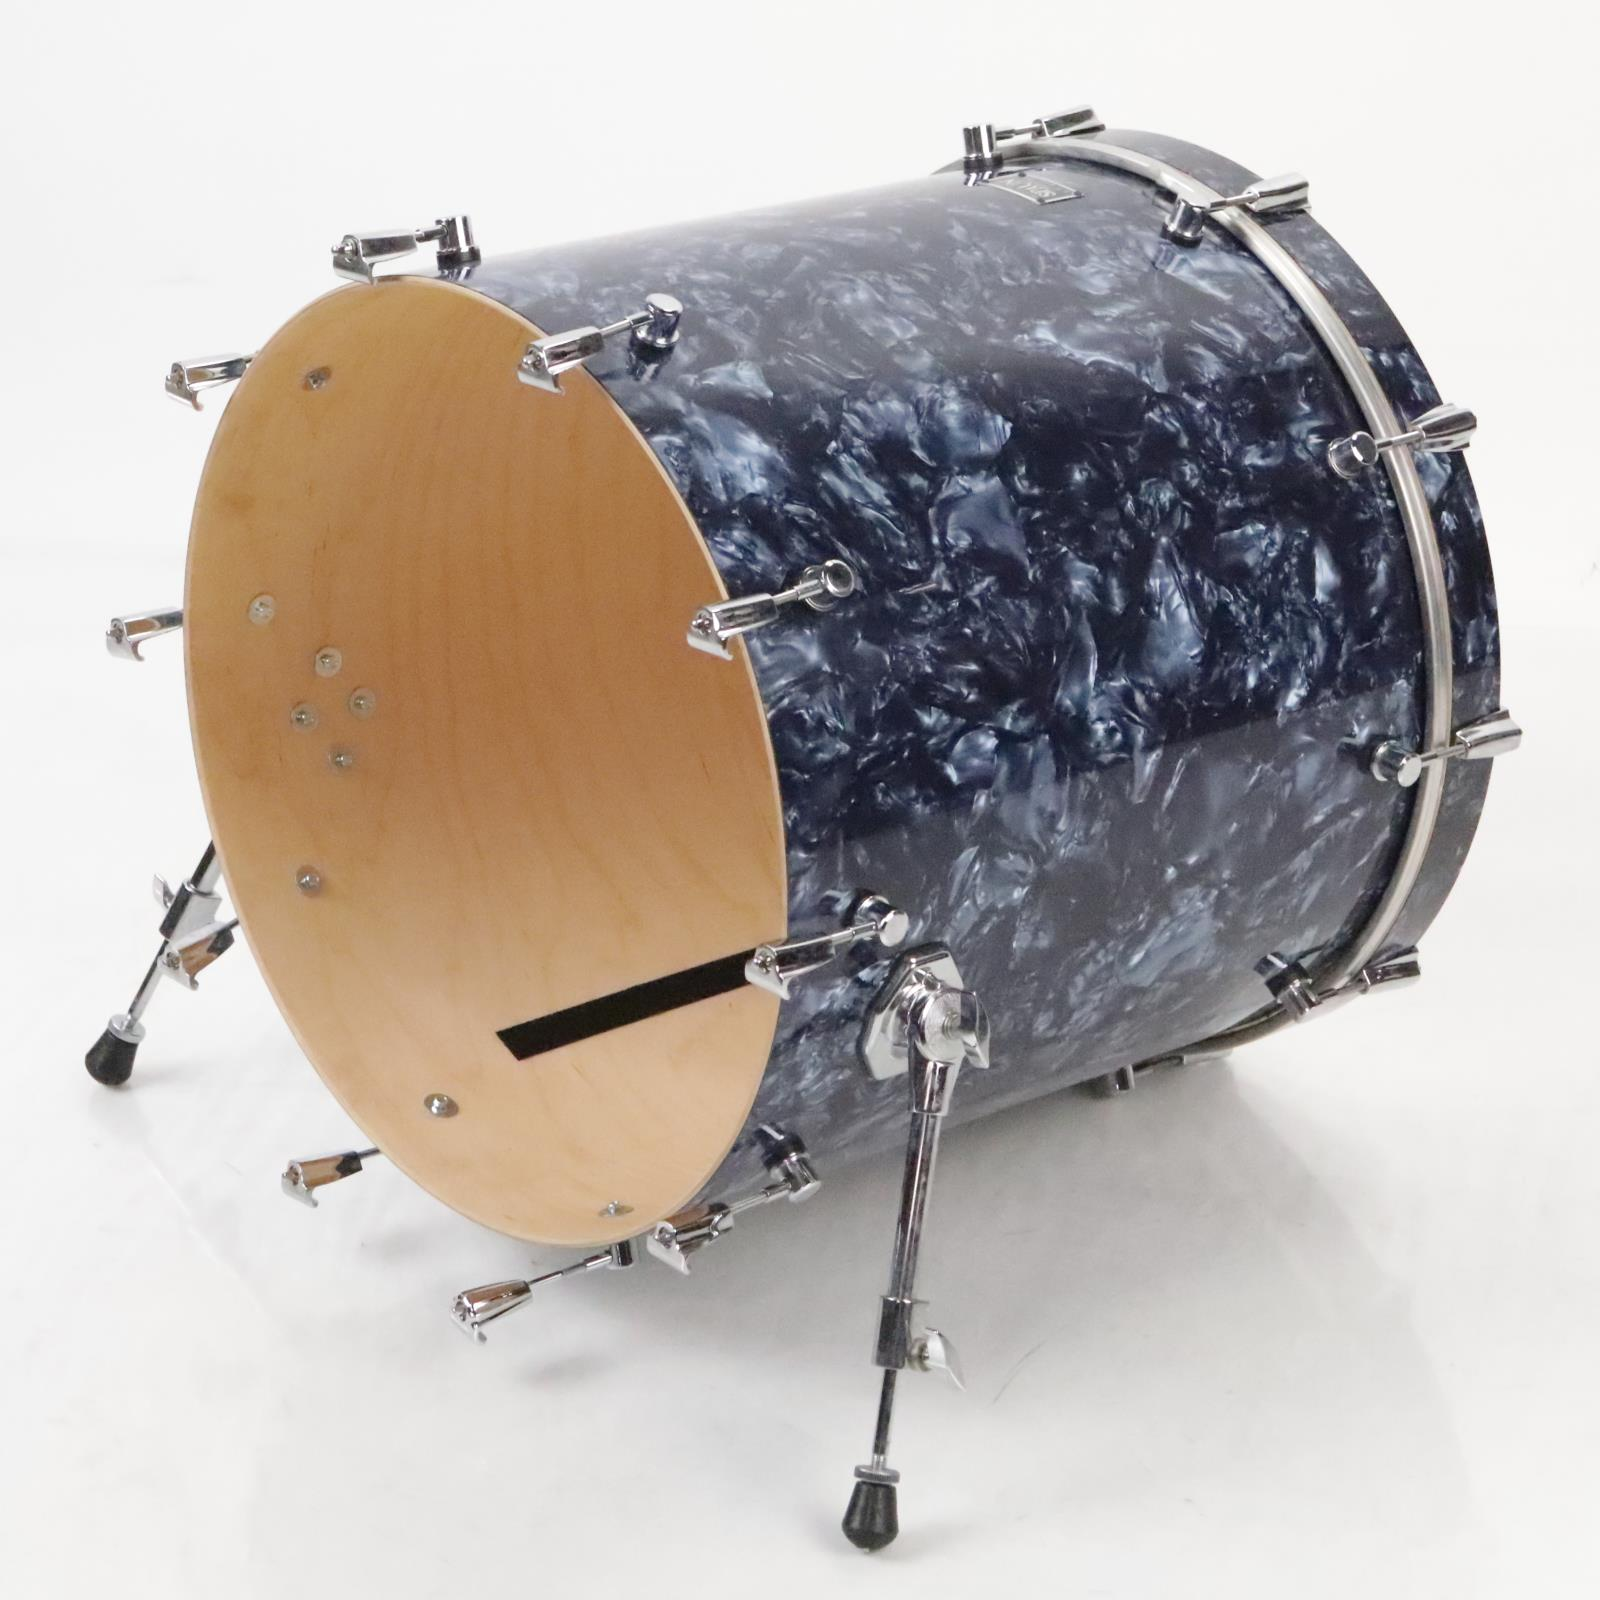 Spaun 22x20 Kick Bass Drum Owned by Fall Out Boy #35964